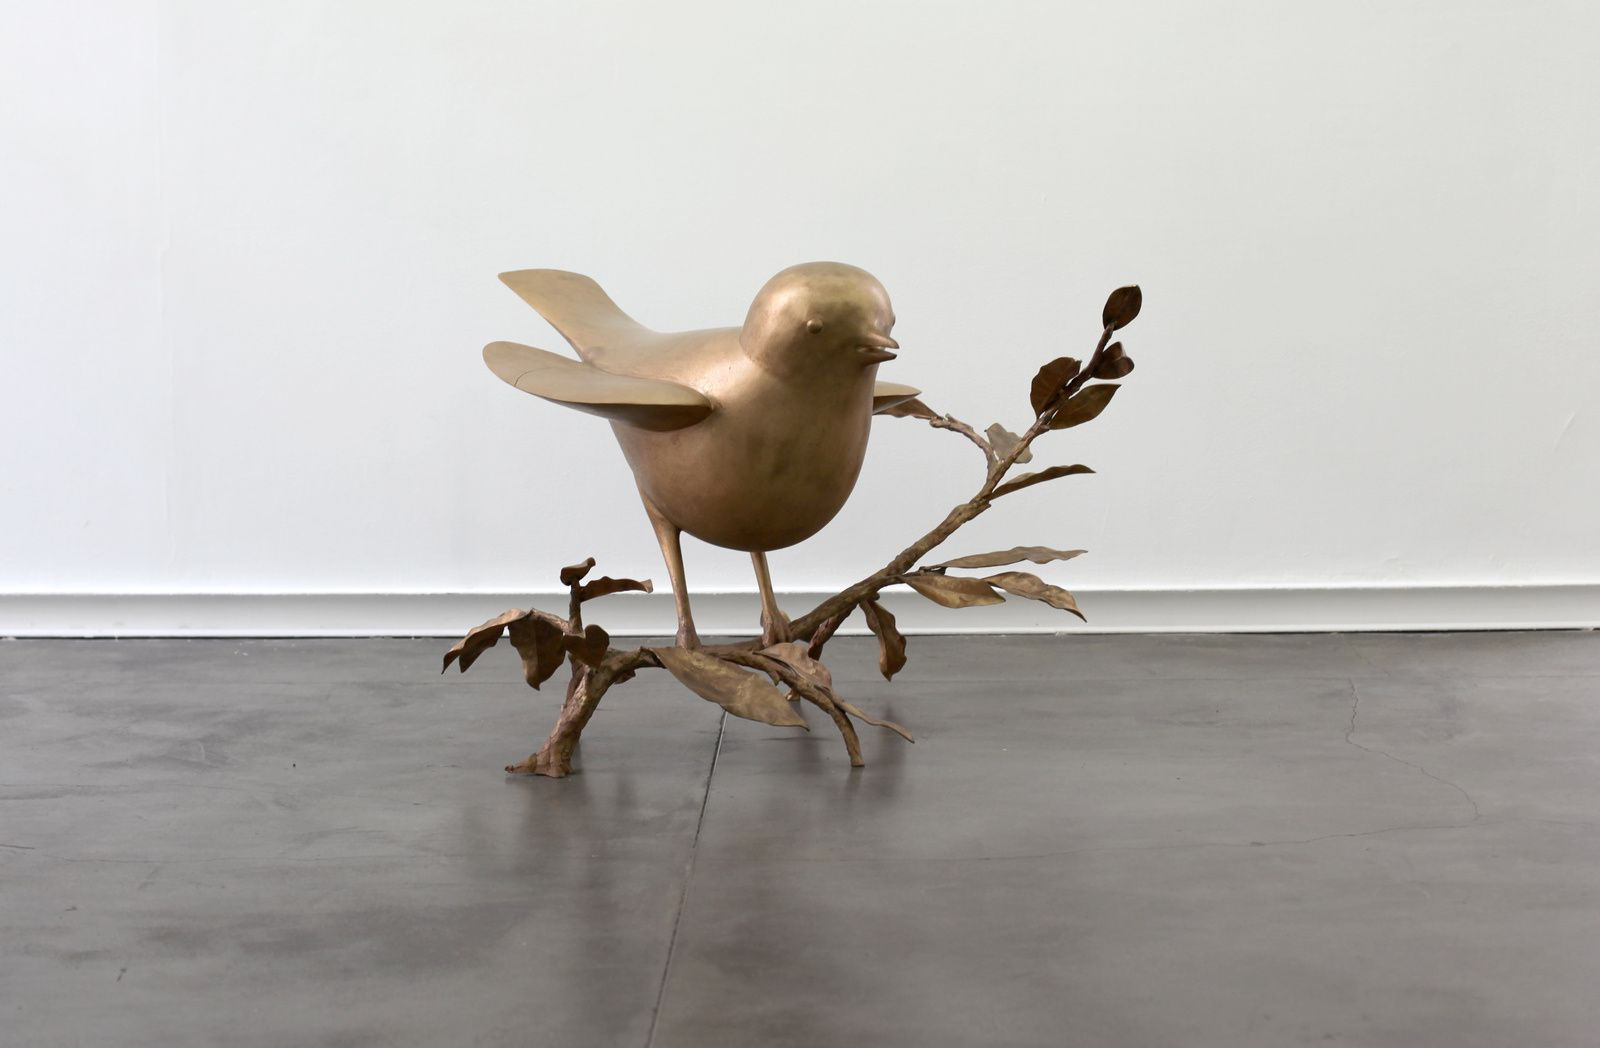 """Oiseau de Peter (grand)"", 2003 - 2008 de Françoic Xavier LALANNE - Courtesy Galerie Mitterrand © Photo Éric Simon"